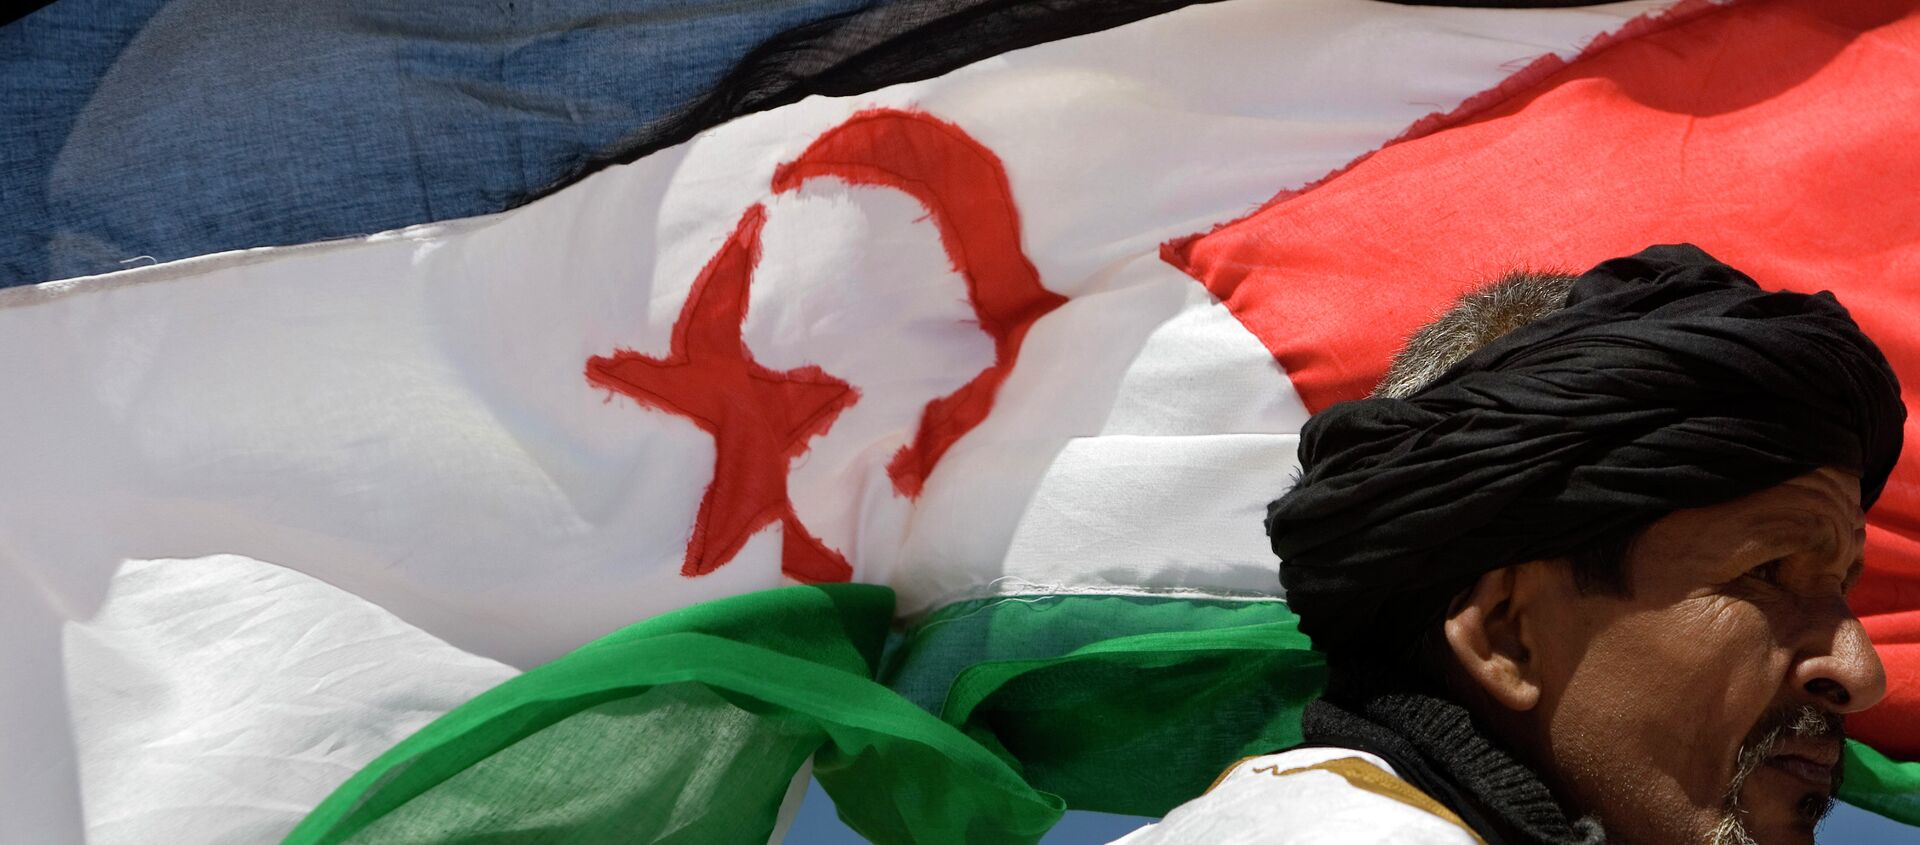 A pro-independence Polisario Front supporter looks on during a military parade as a Western Sahara flag flies in the breeze in the village of Tifariti - Sputnik Mundo, 1920, 13.12.2020